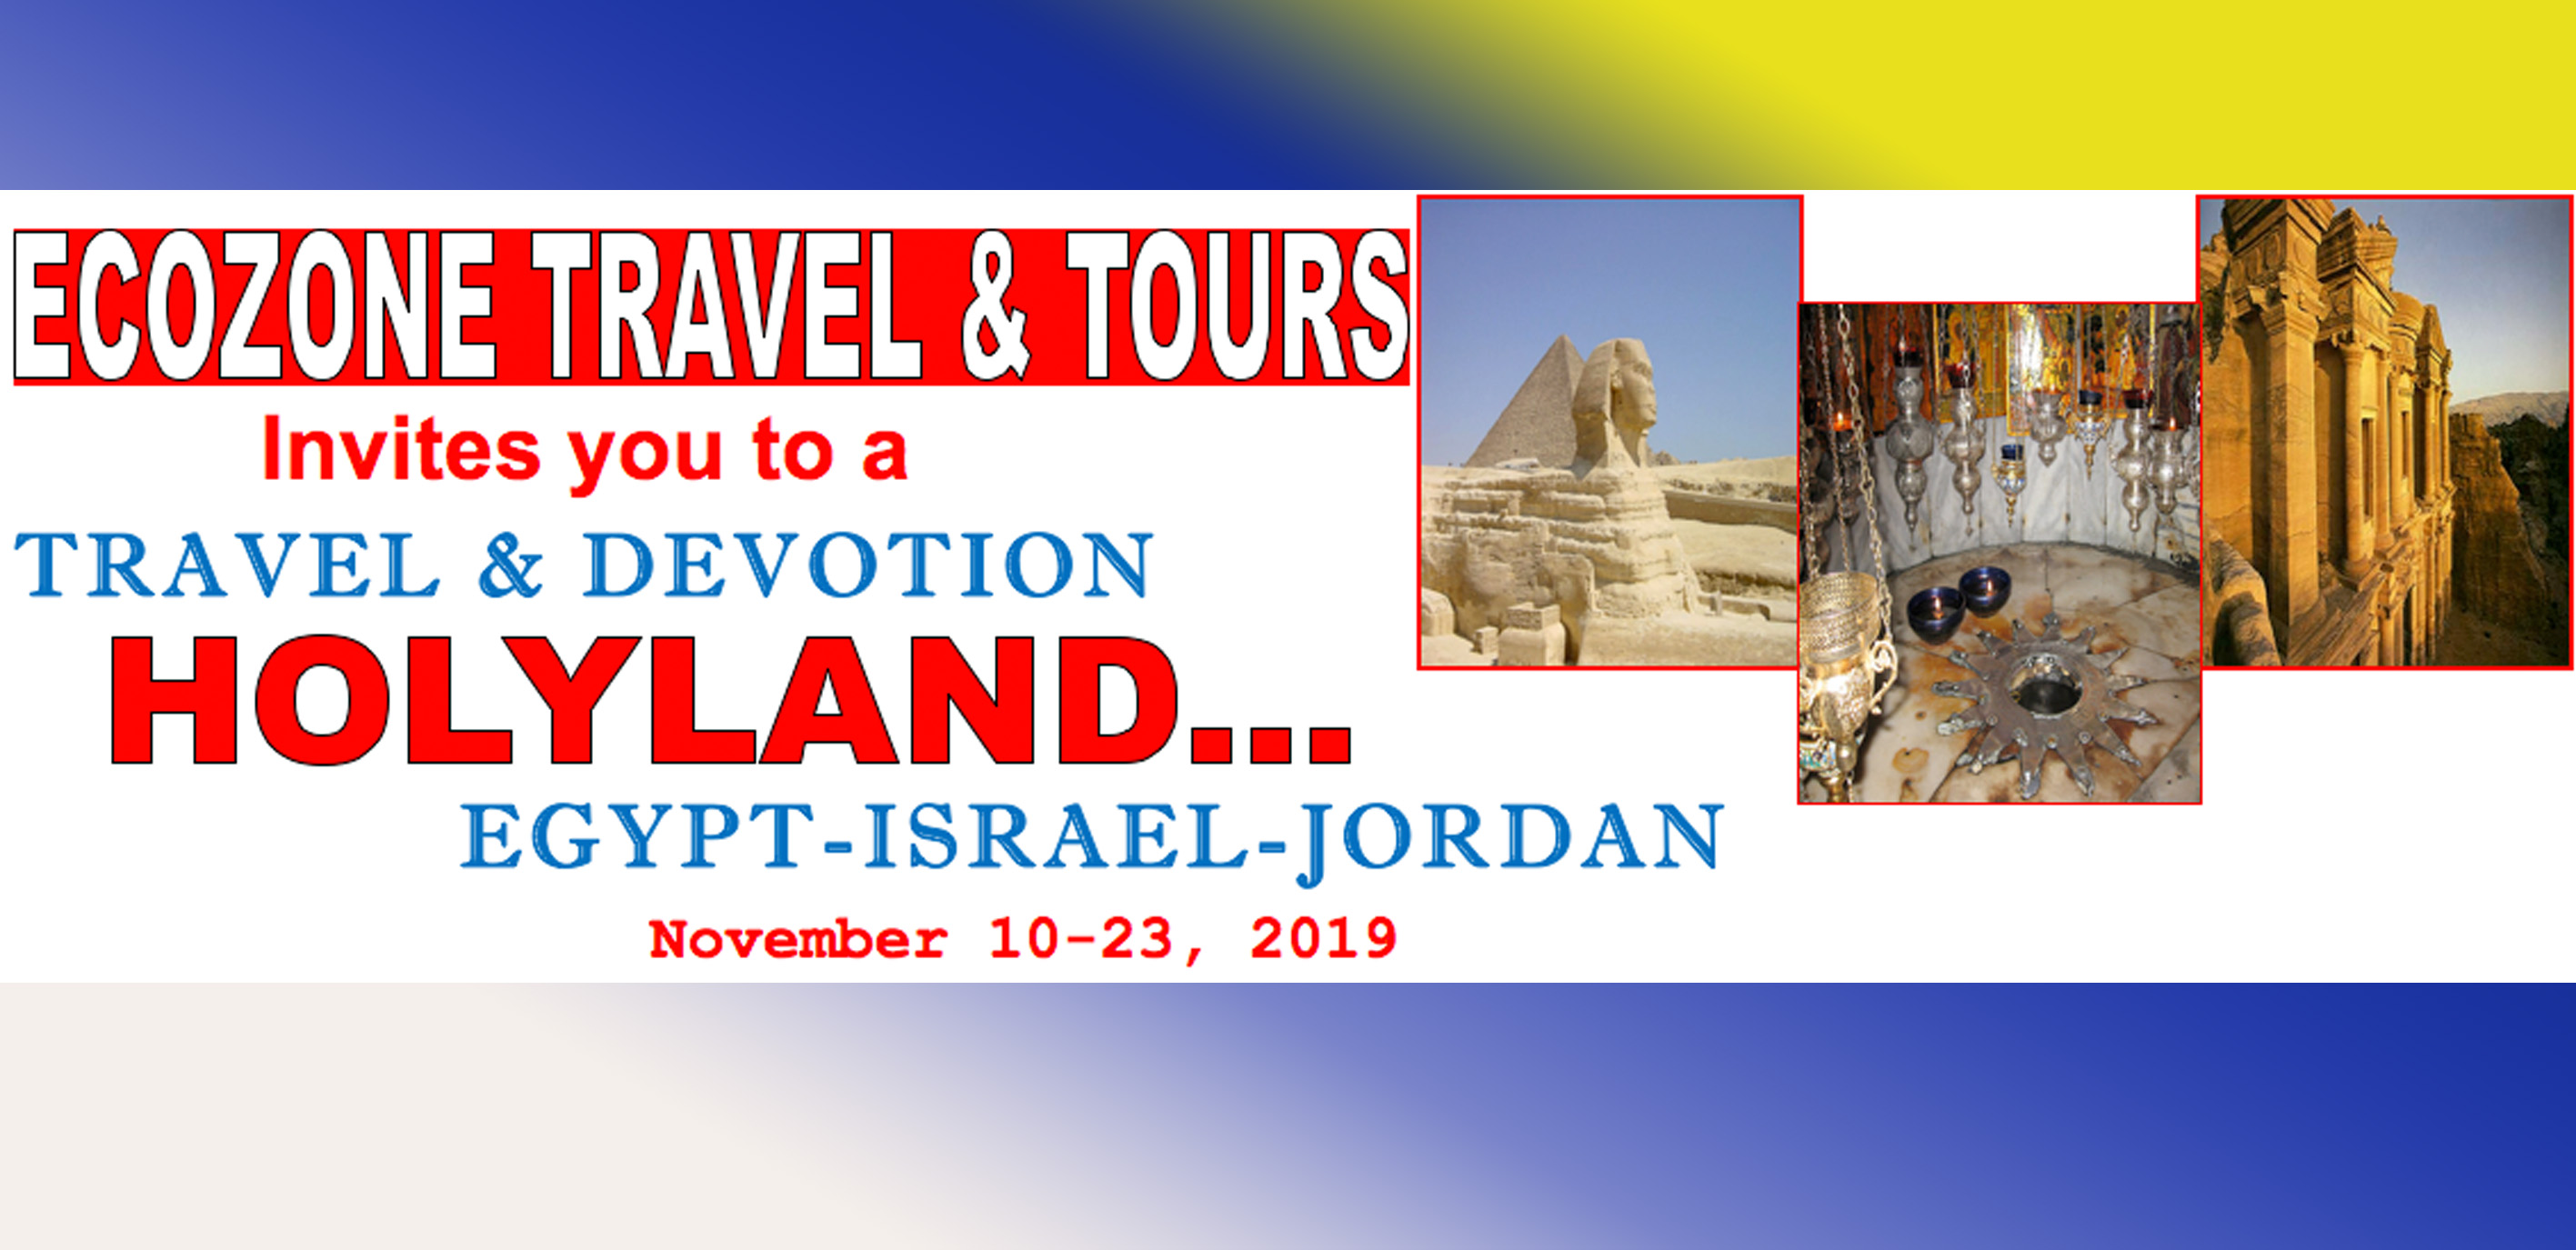 2Nov 10 Holy Land